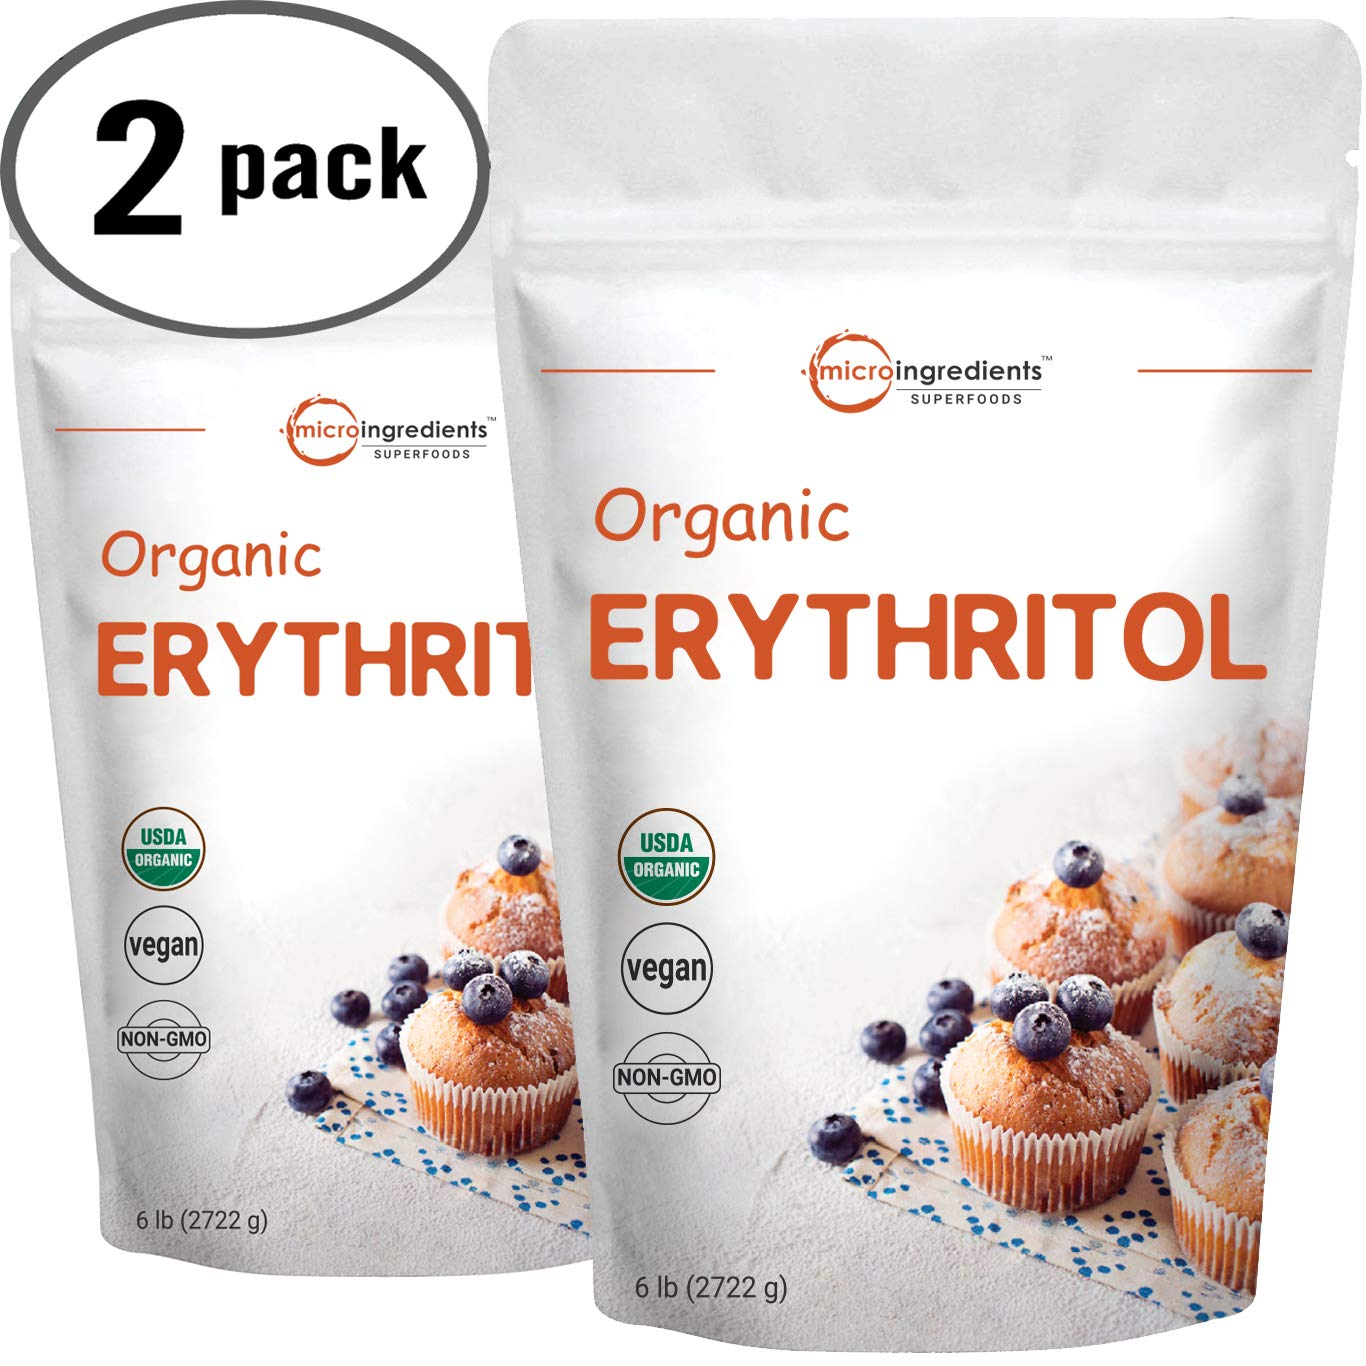 Micro Ingredients Organic Erythritol Granular, 6 Pounds, No Calorie, Sugar Substitute, Natural Sweetener, Non-GMO and Vegan Friendly (2 Pack) by Micro Ingredients